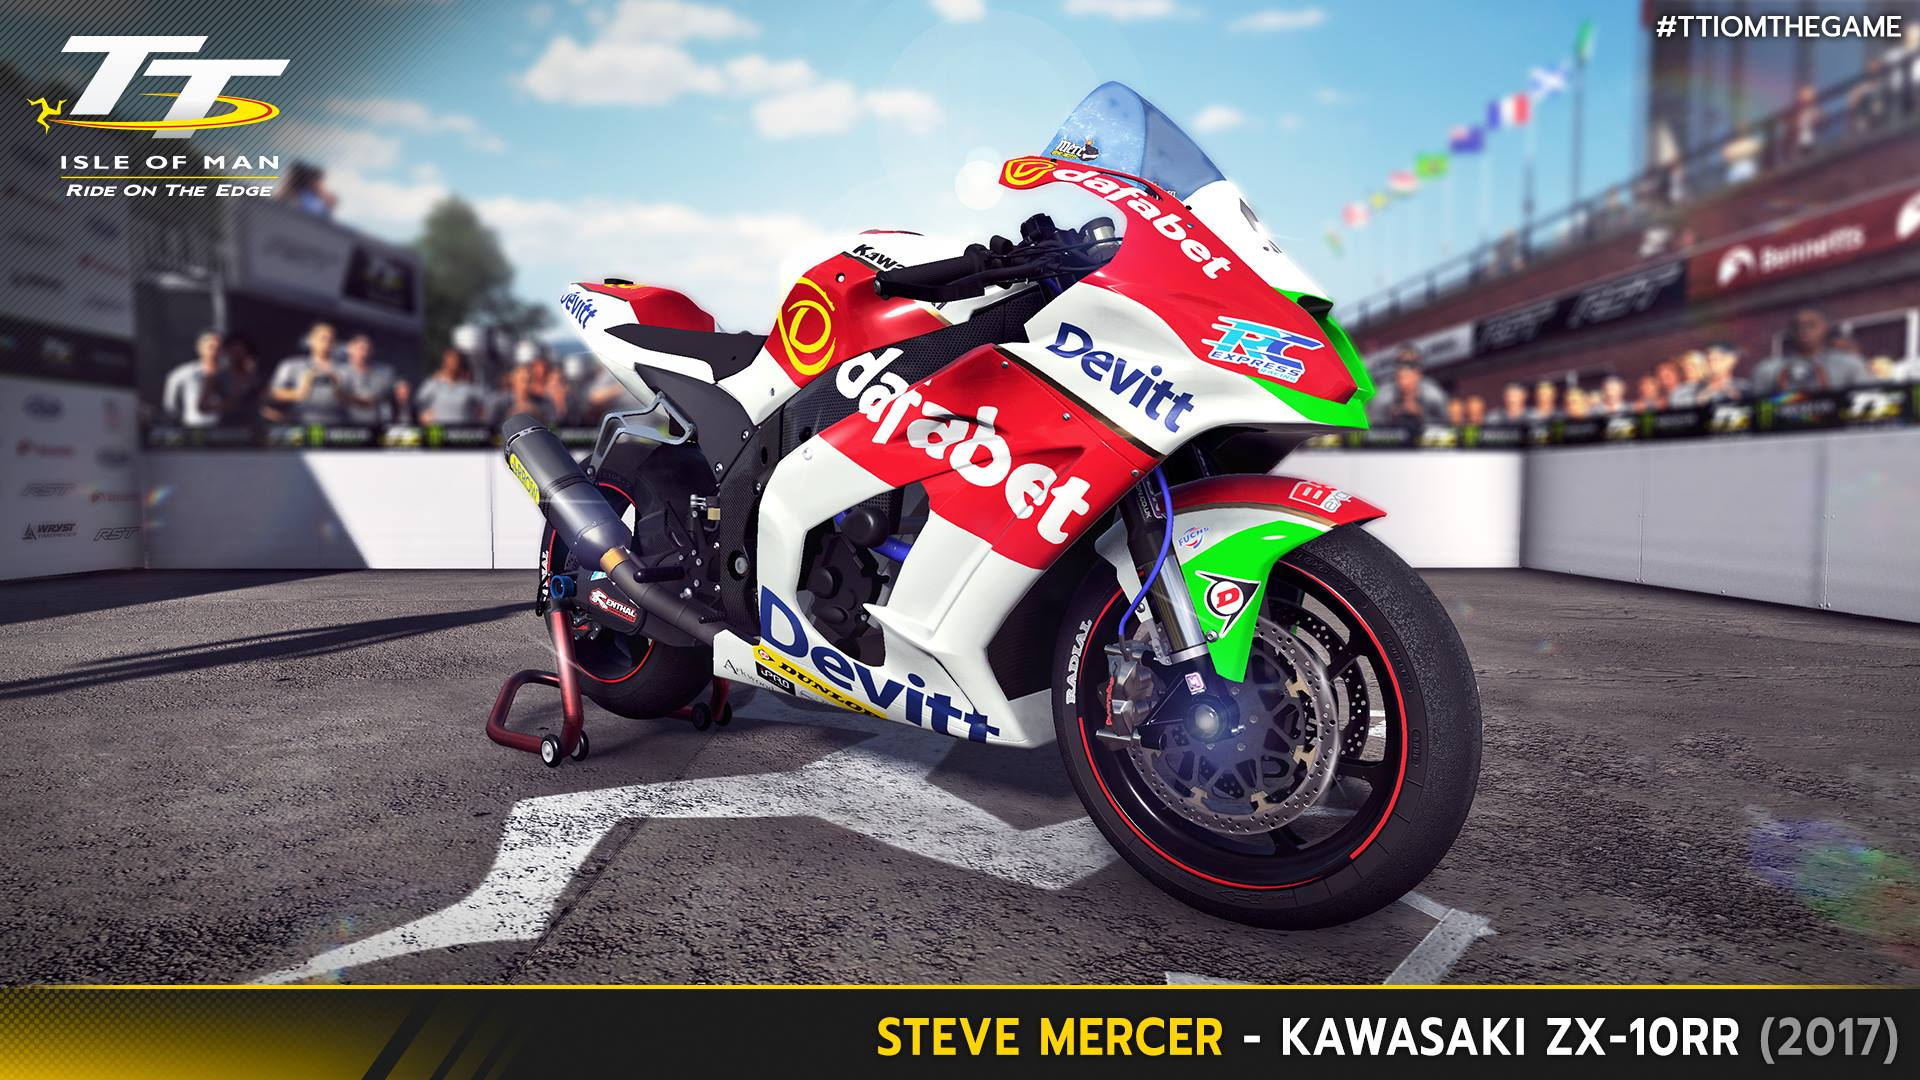 new tt isle of man game images revealed racedepartment